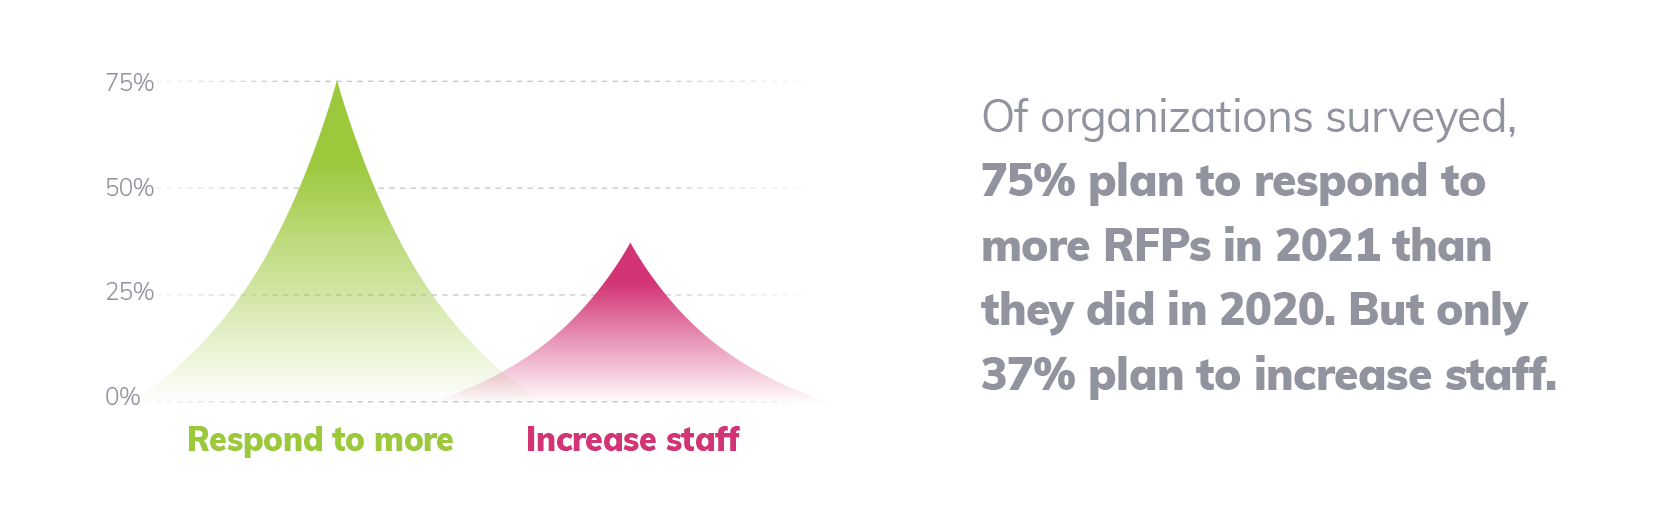 75% of organizations plan to respond to more RFPs in 2021 than 2020. But only 37% plan to increase staff.